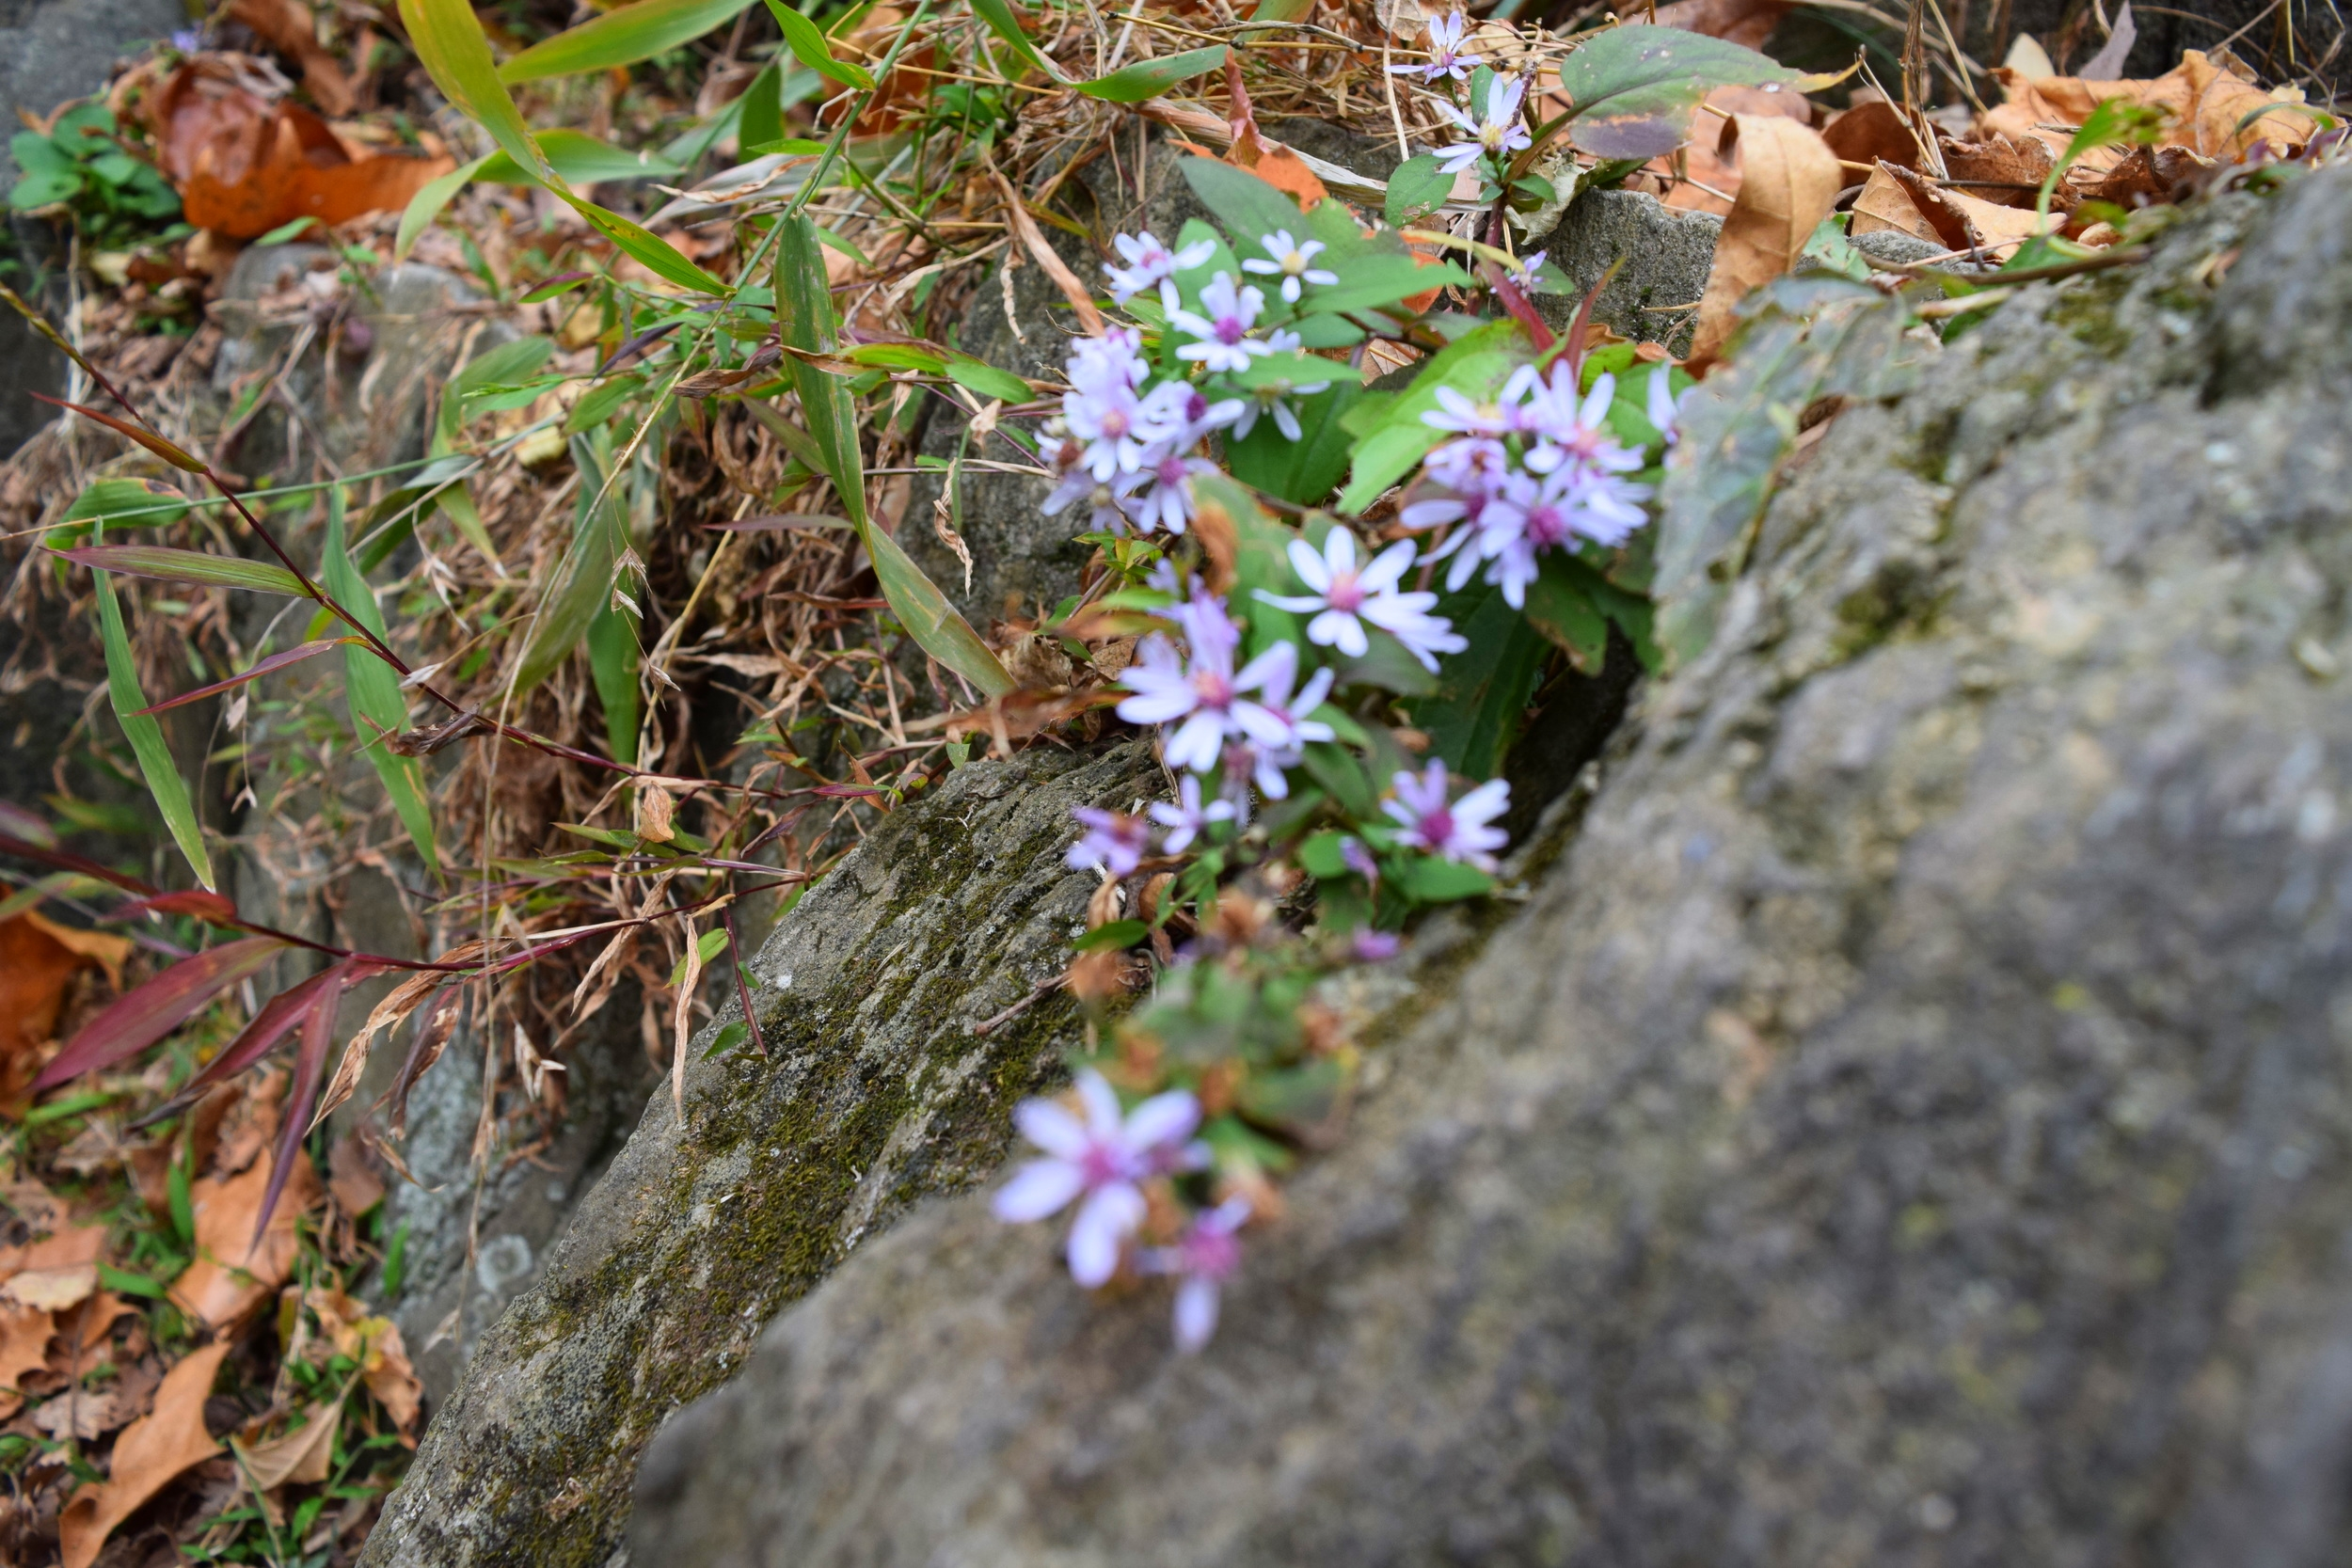 Smooth blue aster, a wonderful fall plant that provides crucial late-season nectar to pollinators like bees.